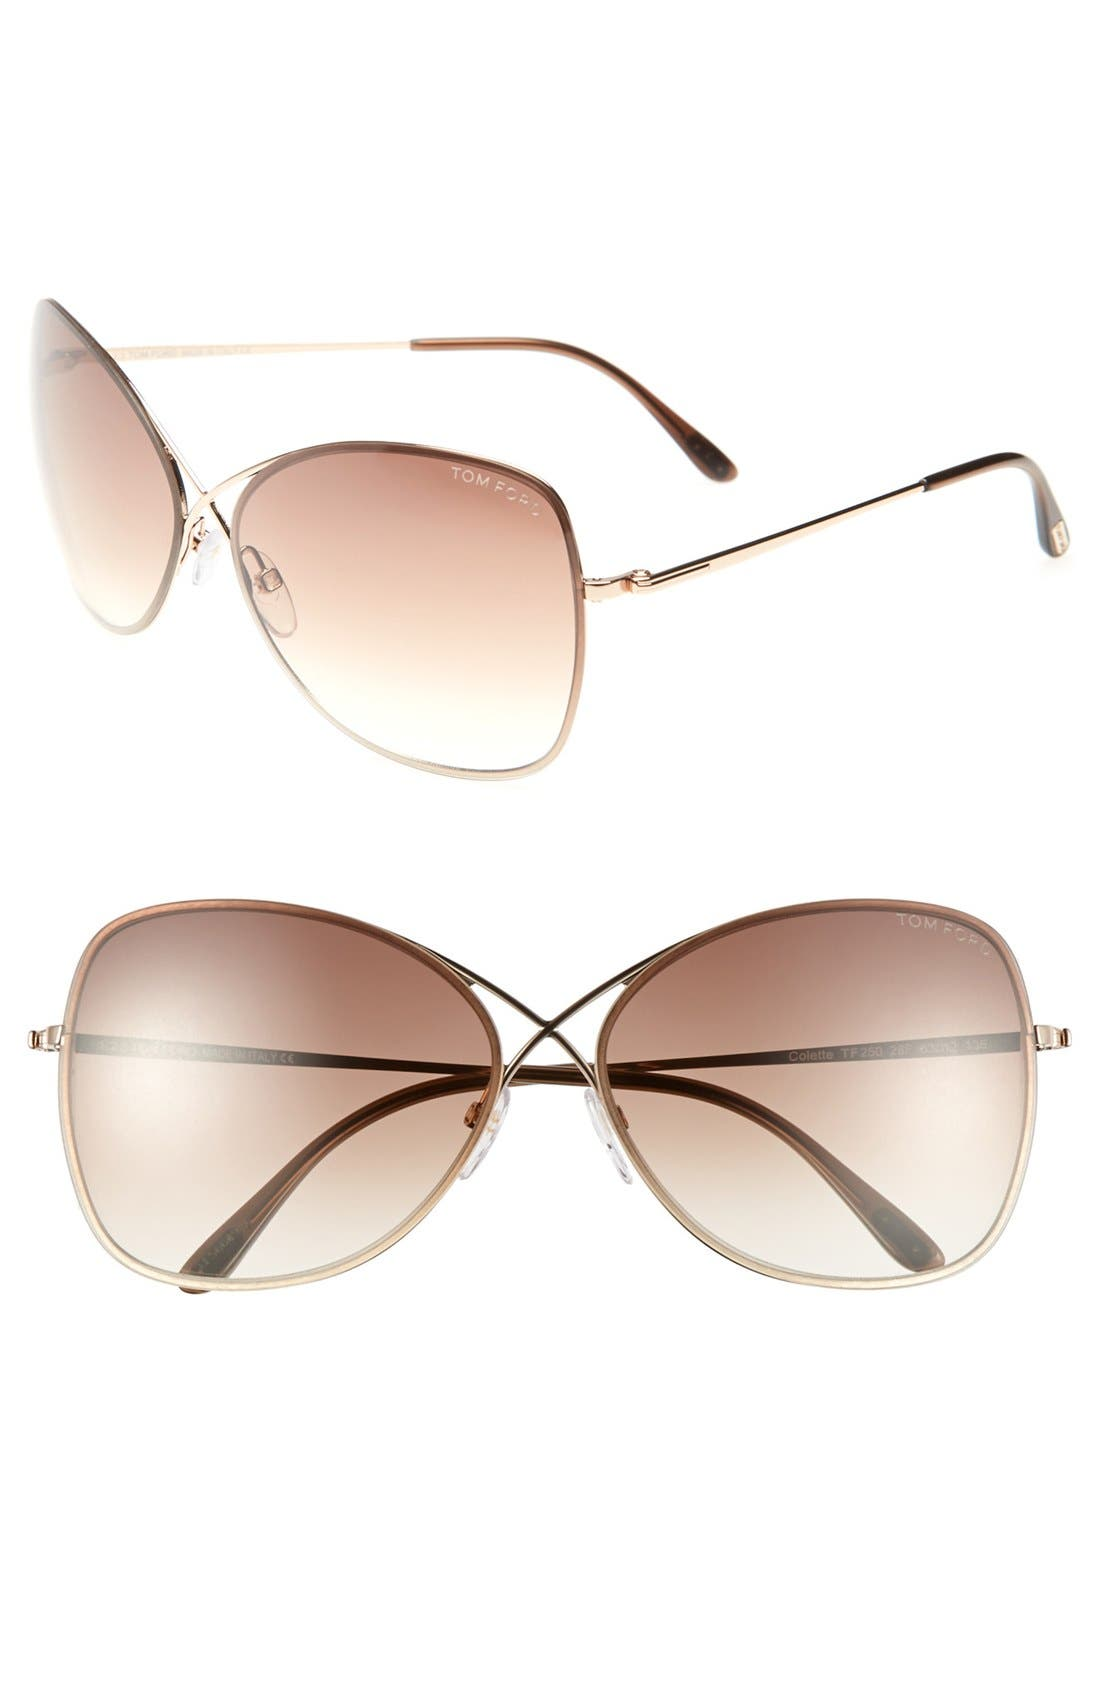 TOM FORD, 'Colette' 63mm Oversize Sunglasses, Main thumbnail 1, color, SHINY ROSE GOLD/ DARK BROWN